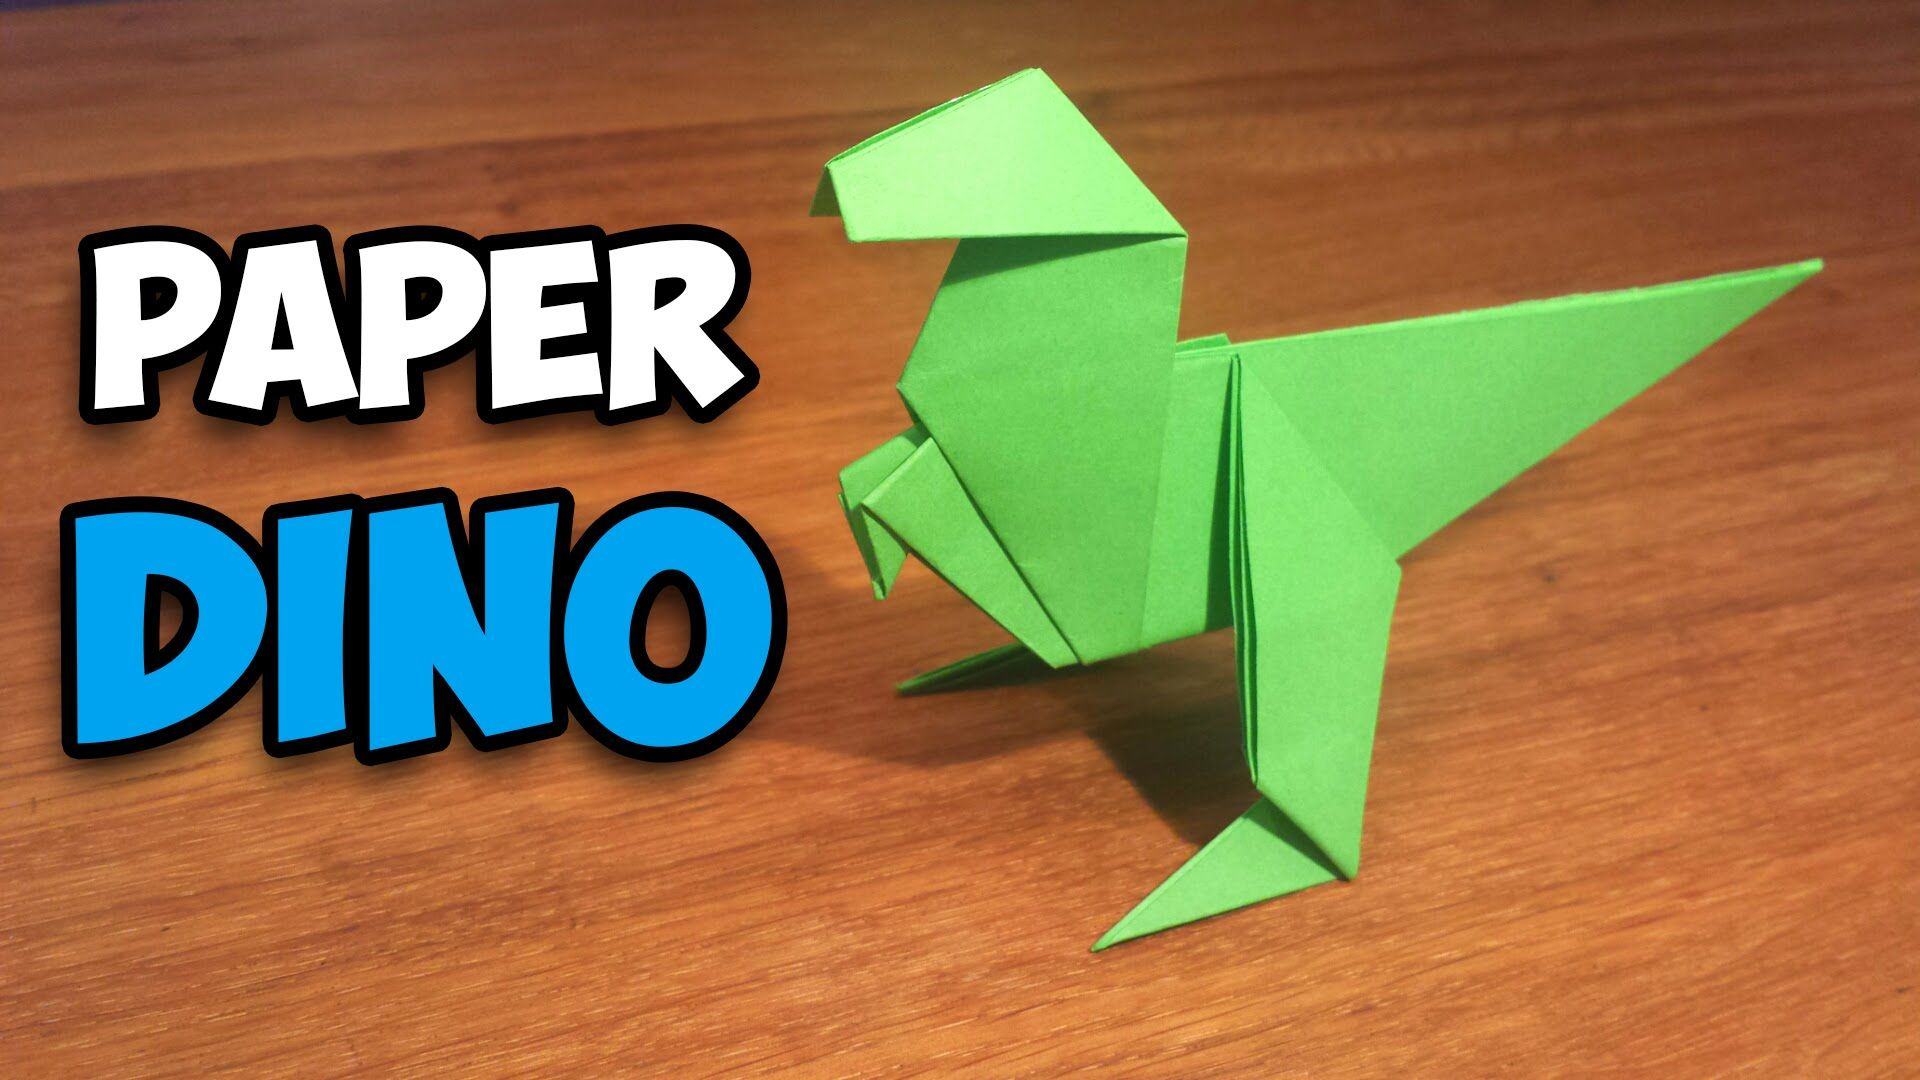 How To Make An Easy Origami Dinosaur In This Tutorial Ill Teach You Epic Paper I Tried Show Everything Very Well So The Video